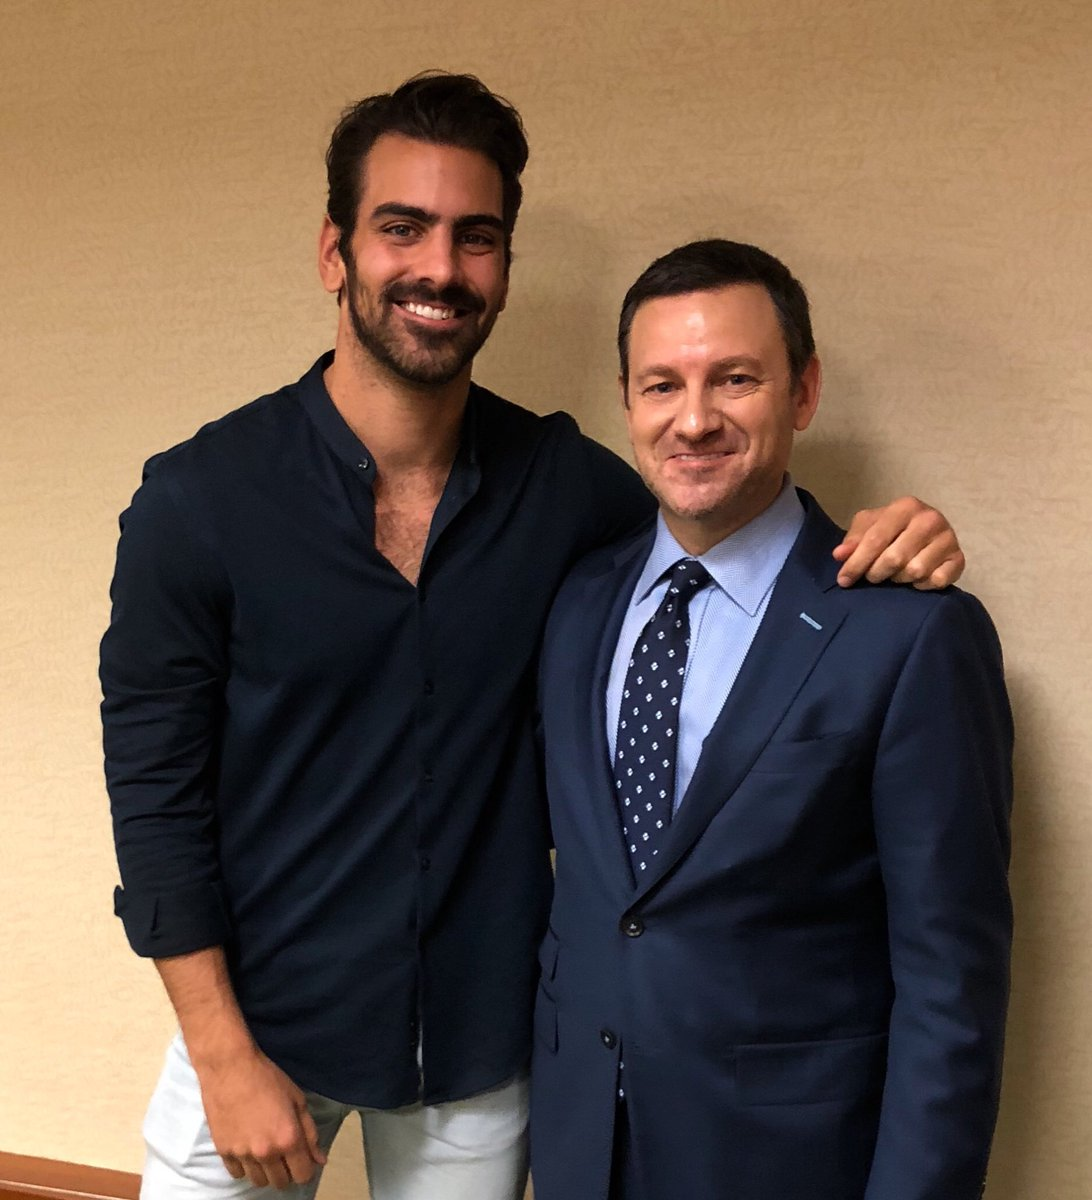 Thank you @NyleDiMarco for advocating for #disability inclusion at the Ruderman Inclusion Summit #Inclusion2017 <br>http://pic.twitter.com/Mxiu2PfDlS